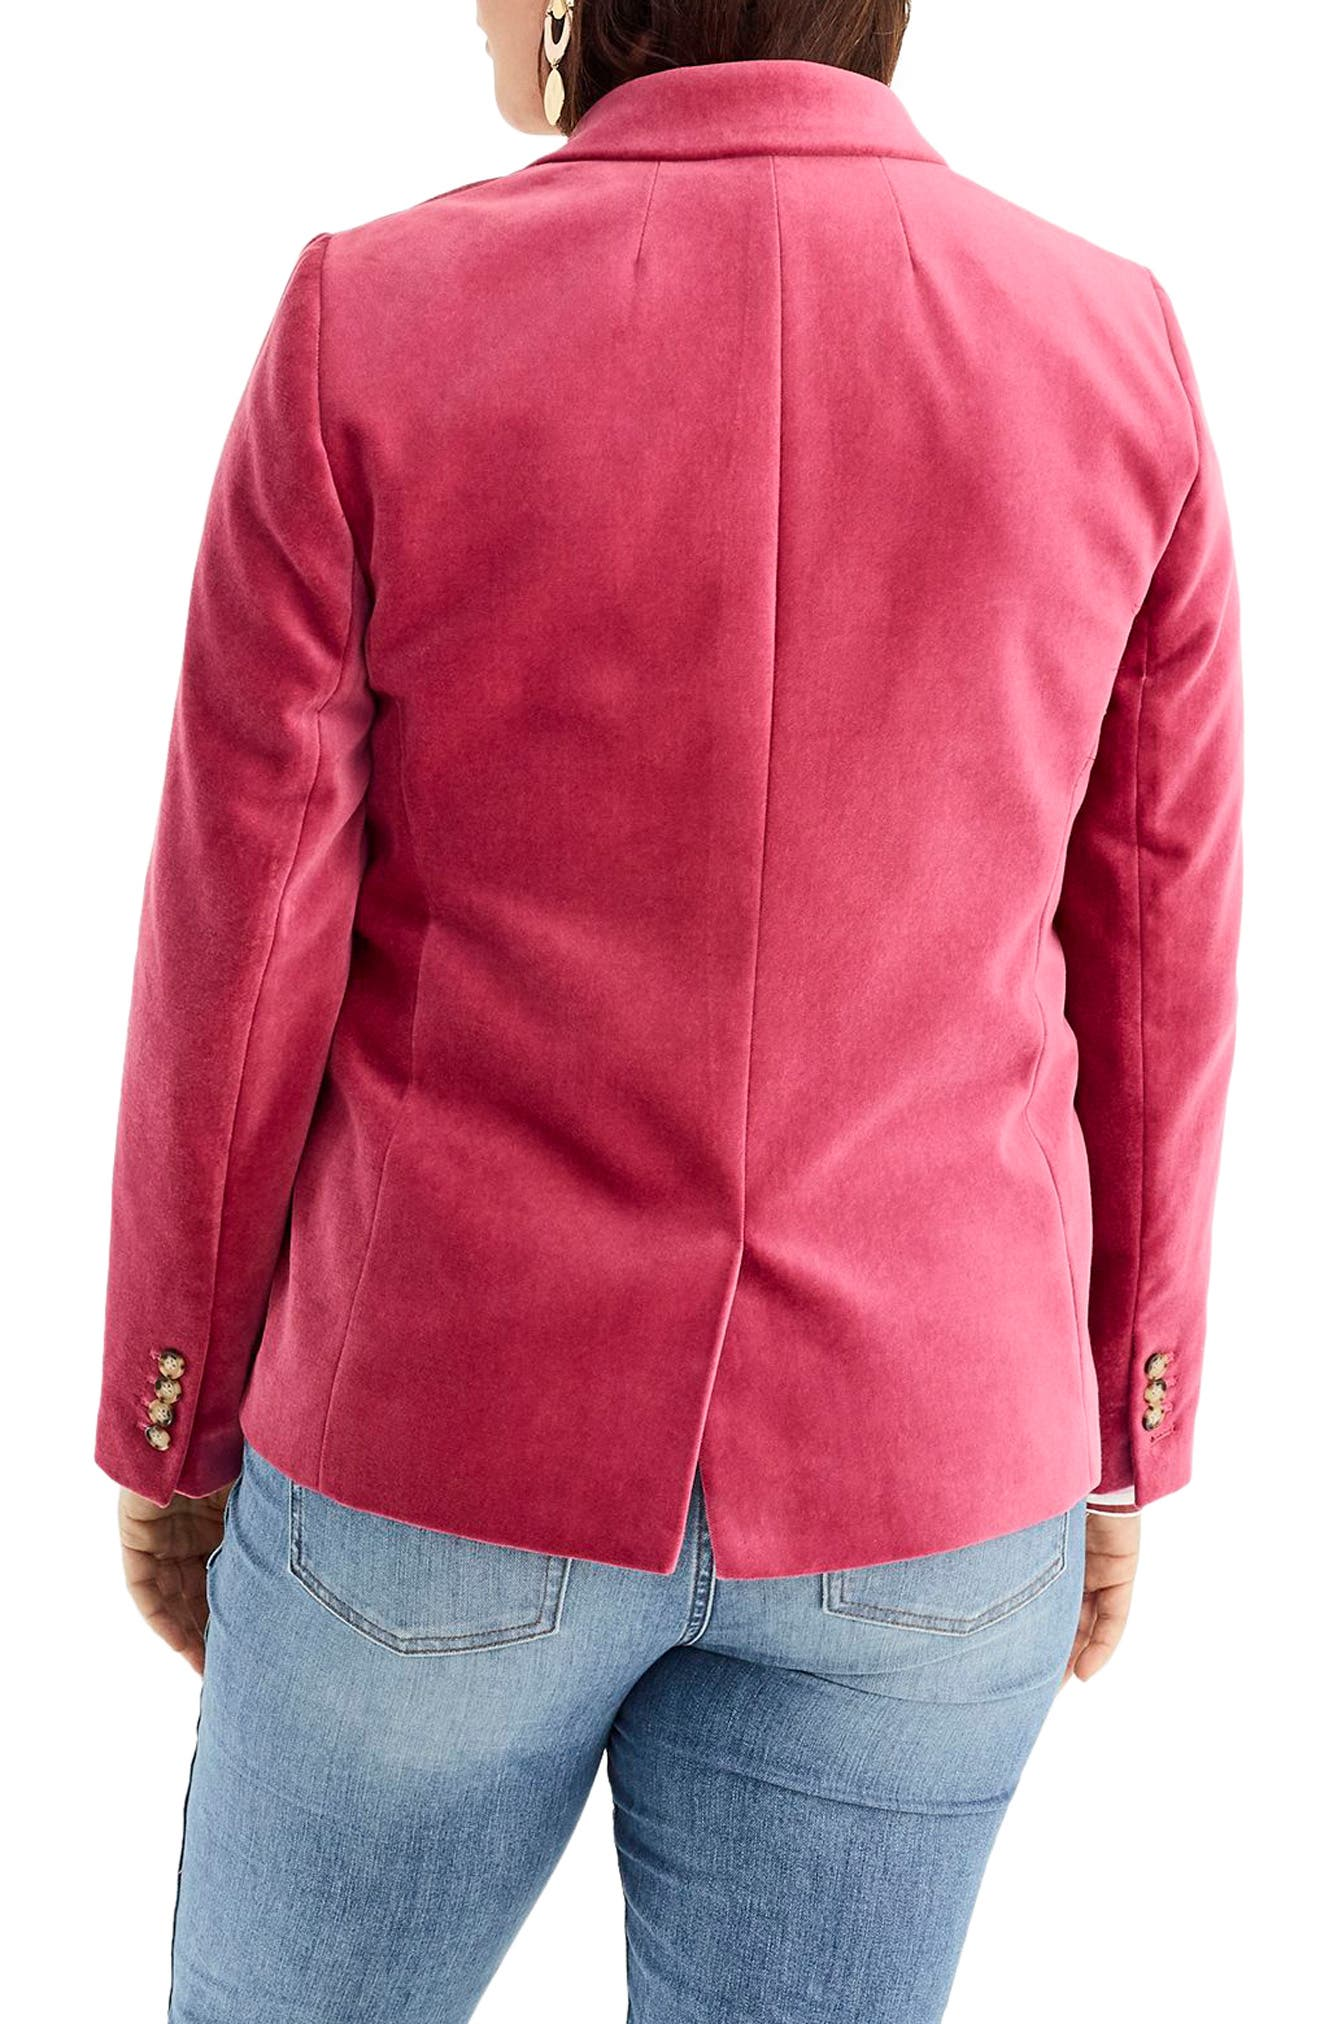 Parke Velvet Blazer,                             Alternate thumbnail 7, color,                             DRIED ROSE